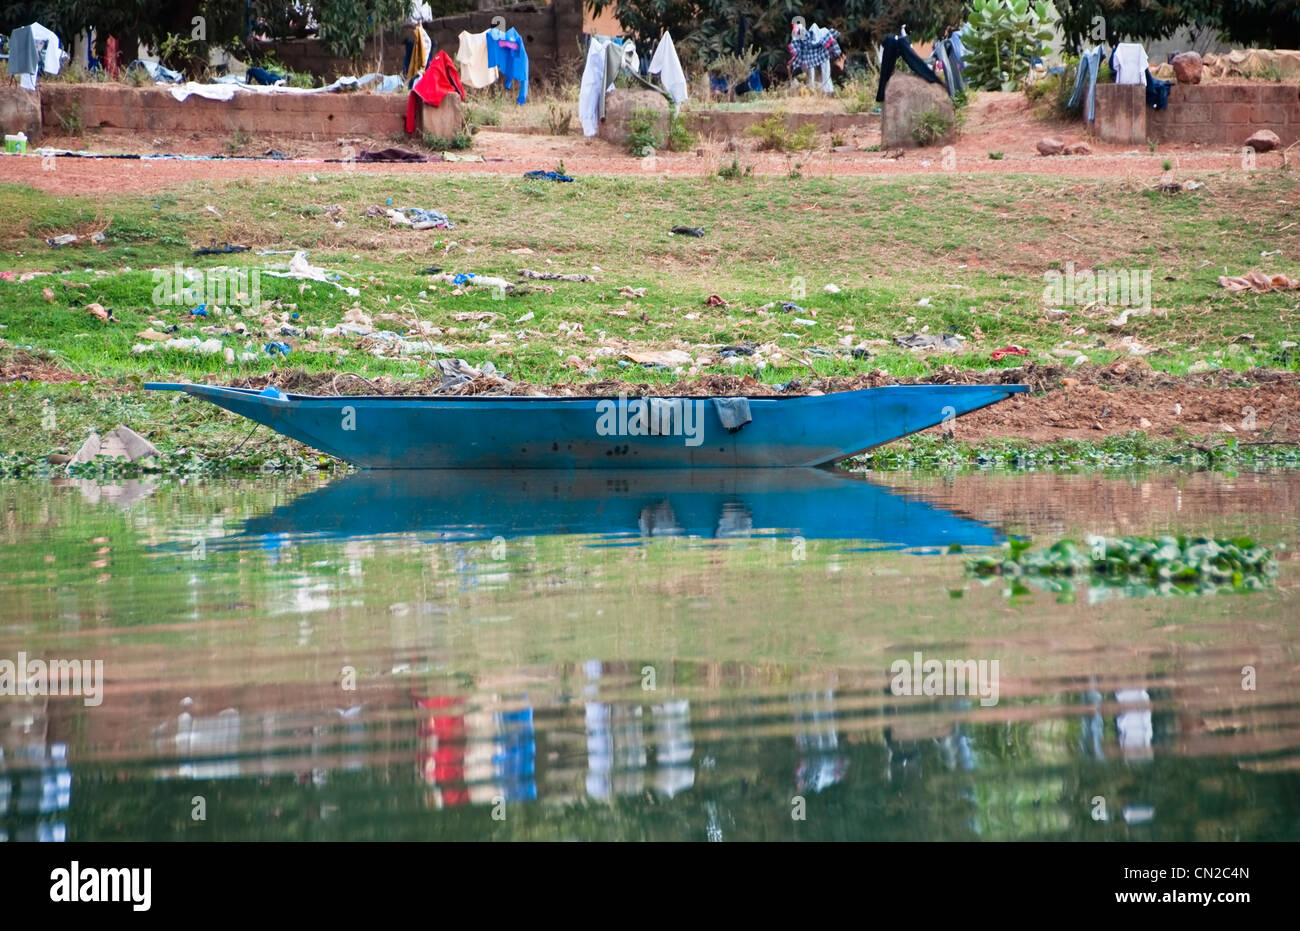 A blue pirogue on the river Niger in Bamako - Stock Image